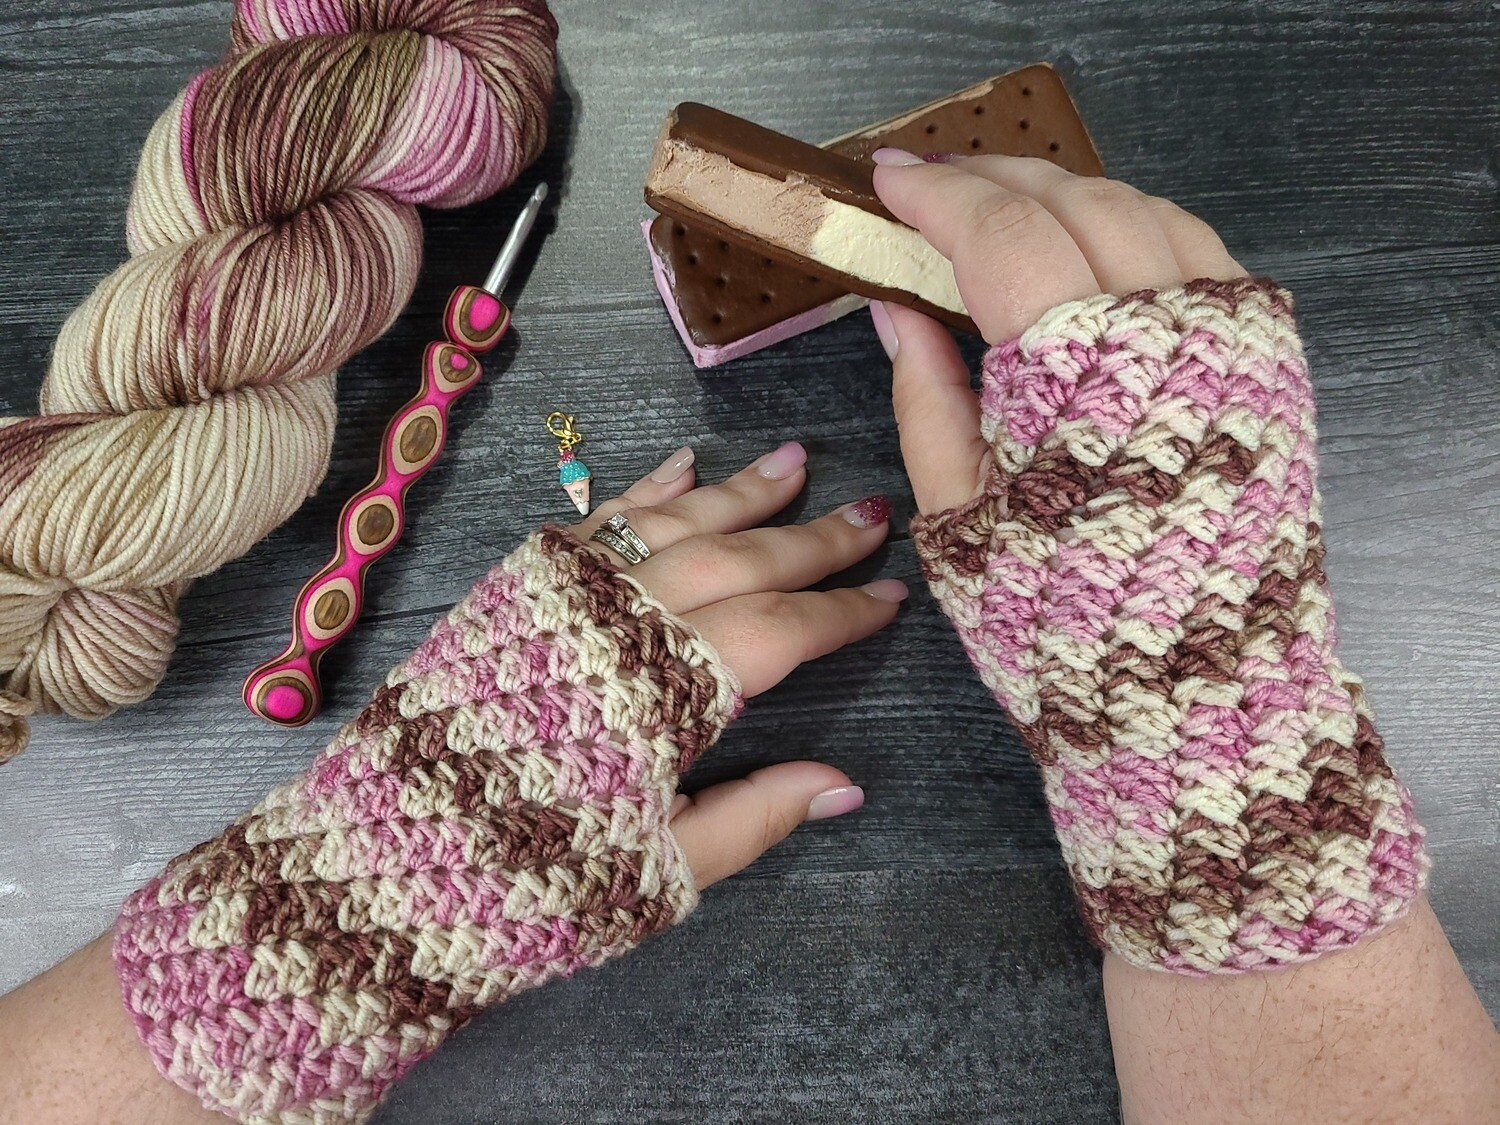 Neapolitan Fingerless Gloves Crochet Kit